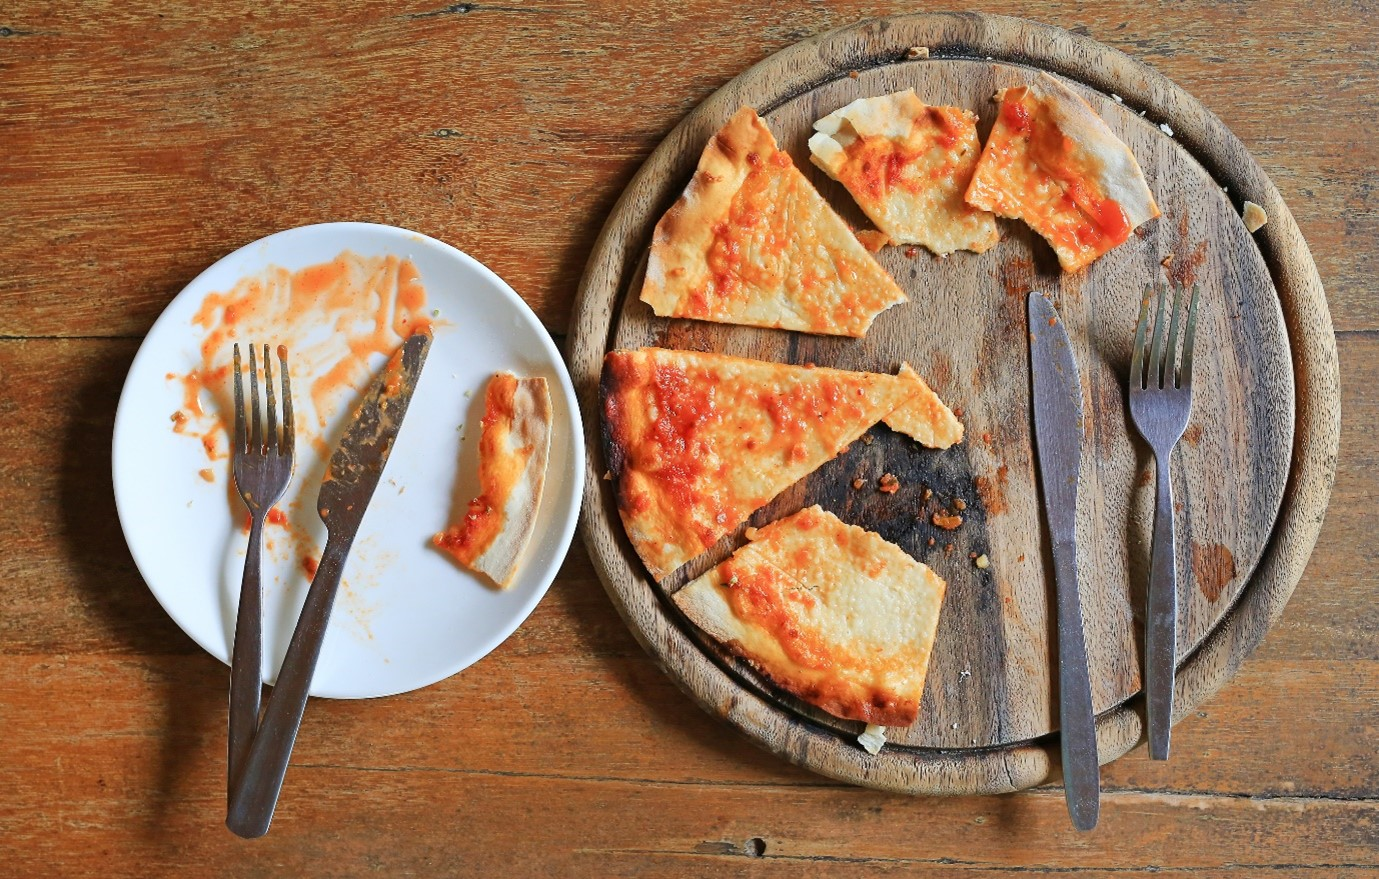 Leftover pizza on a plate.